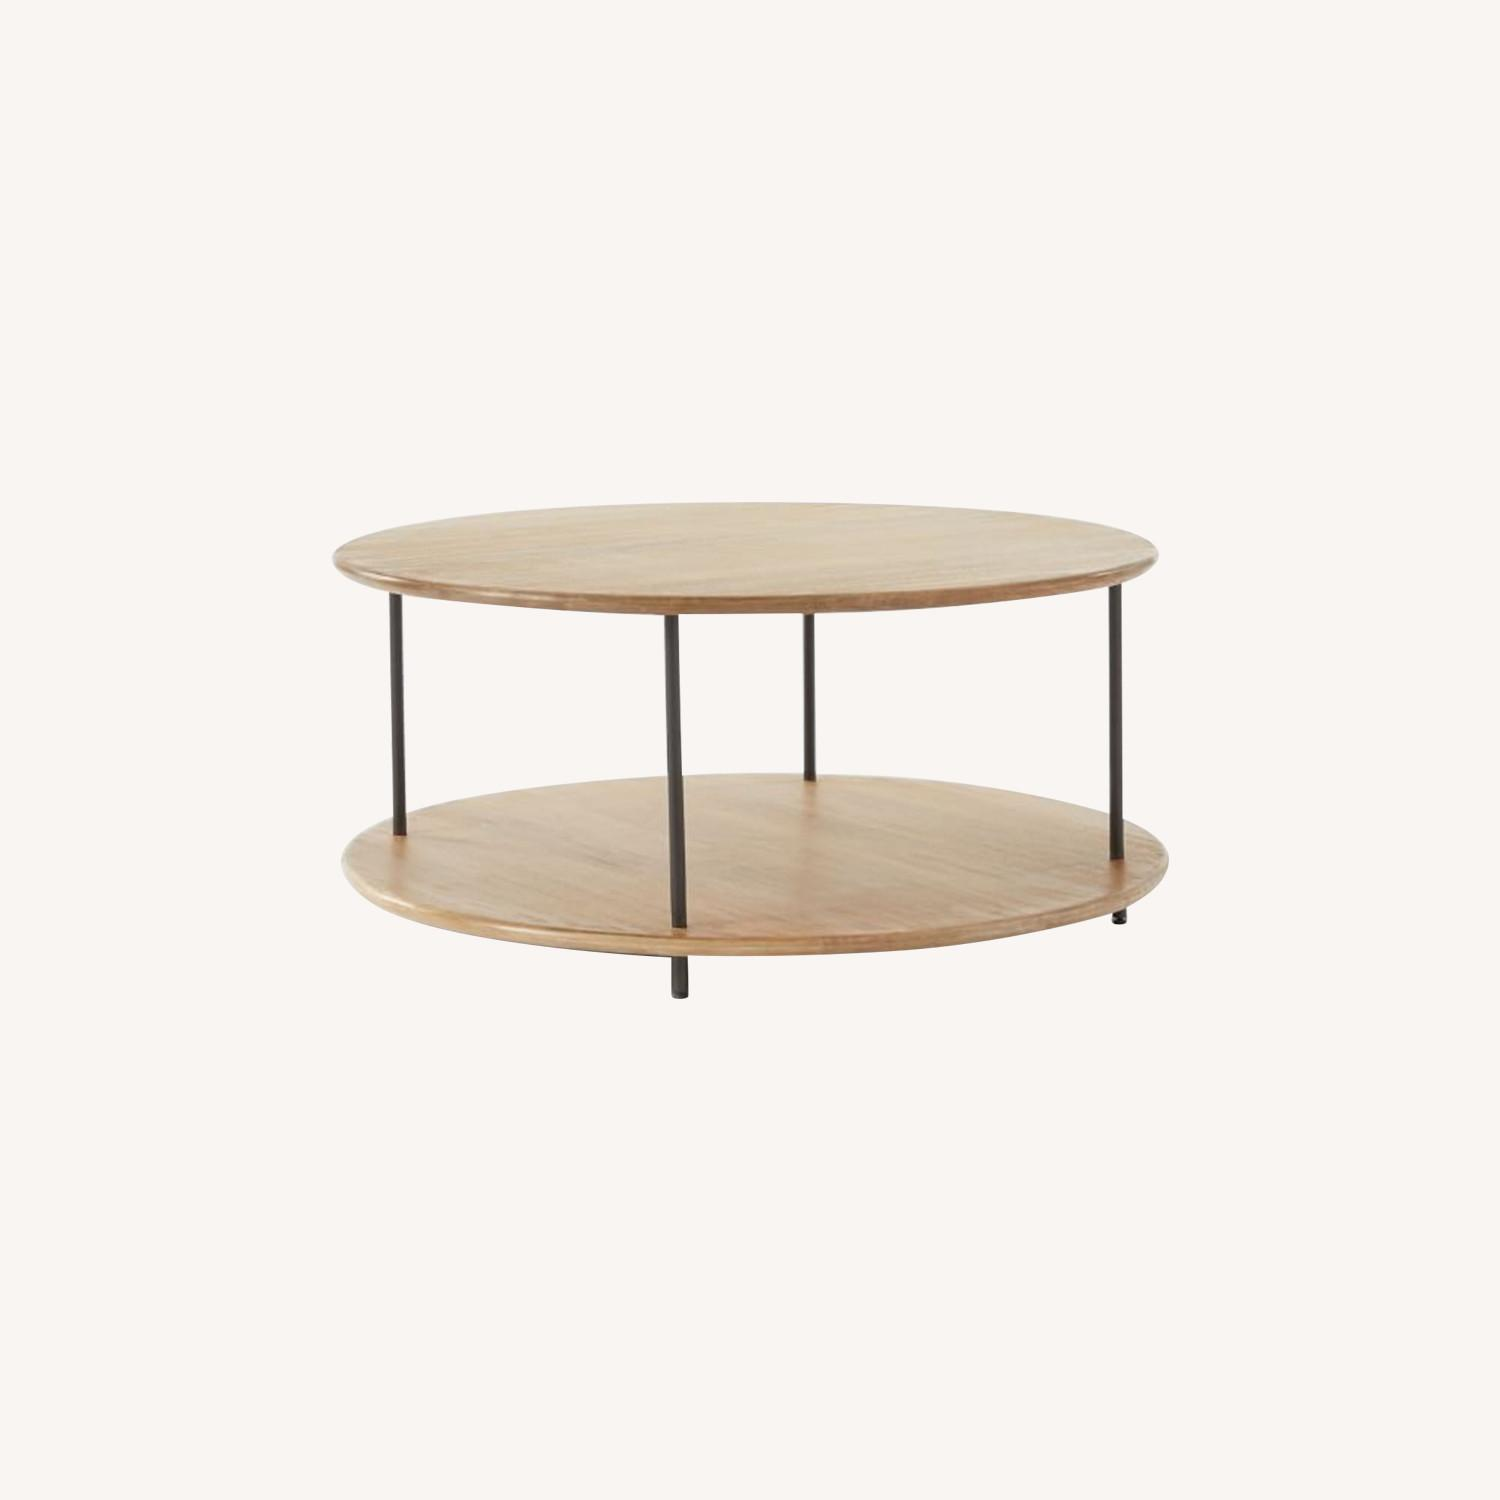 West Elm Tiered Wood Coffee Table - image-0